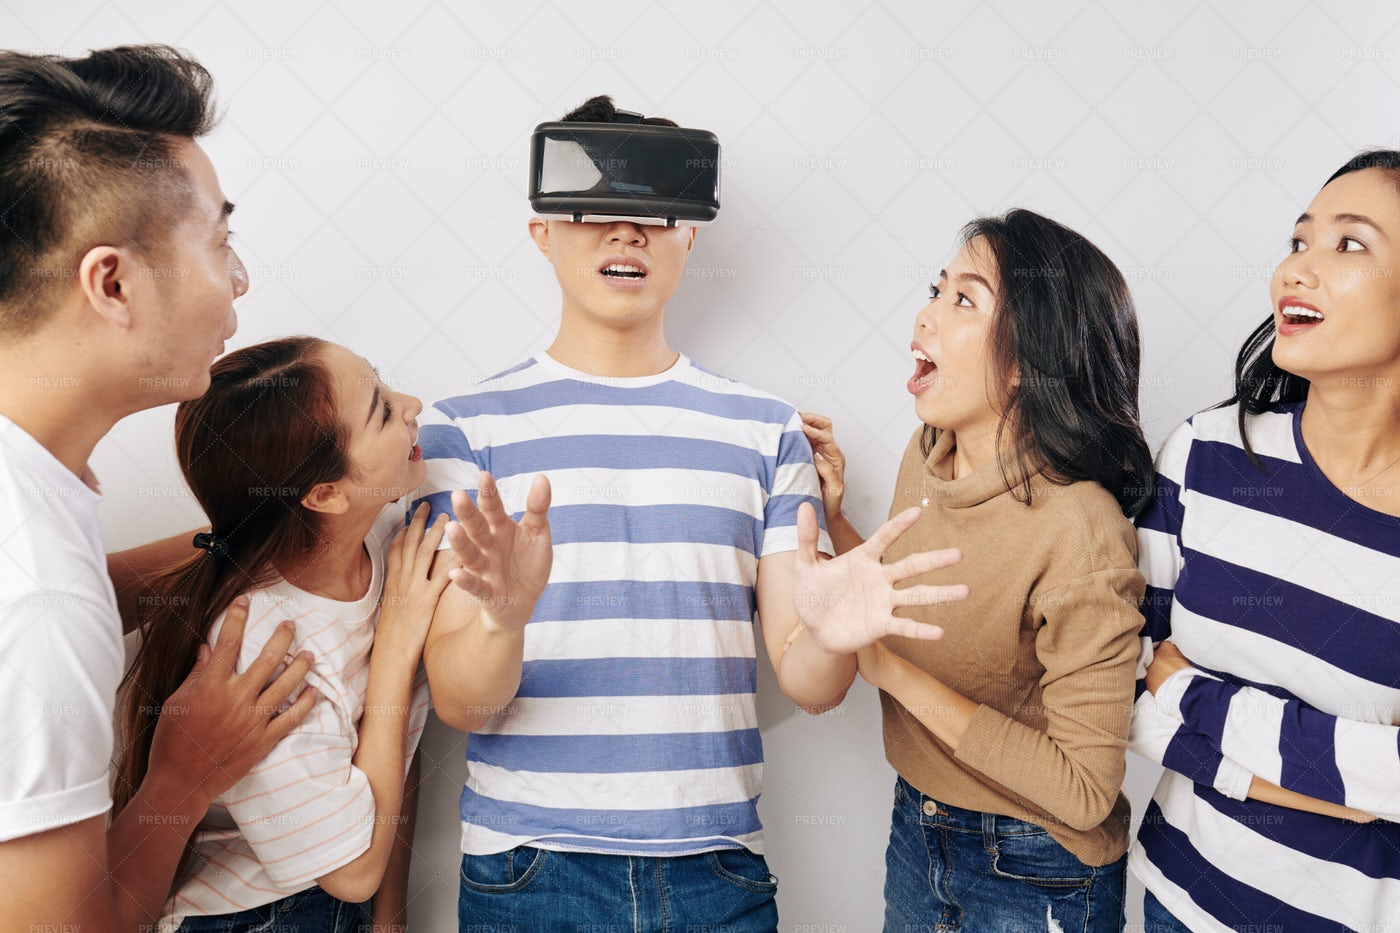 Group Of Friends With Vr Headset: Stock Photos